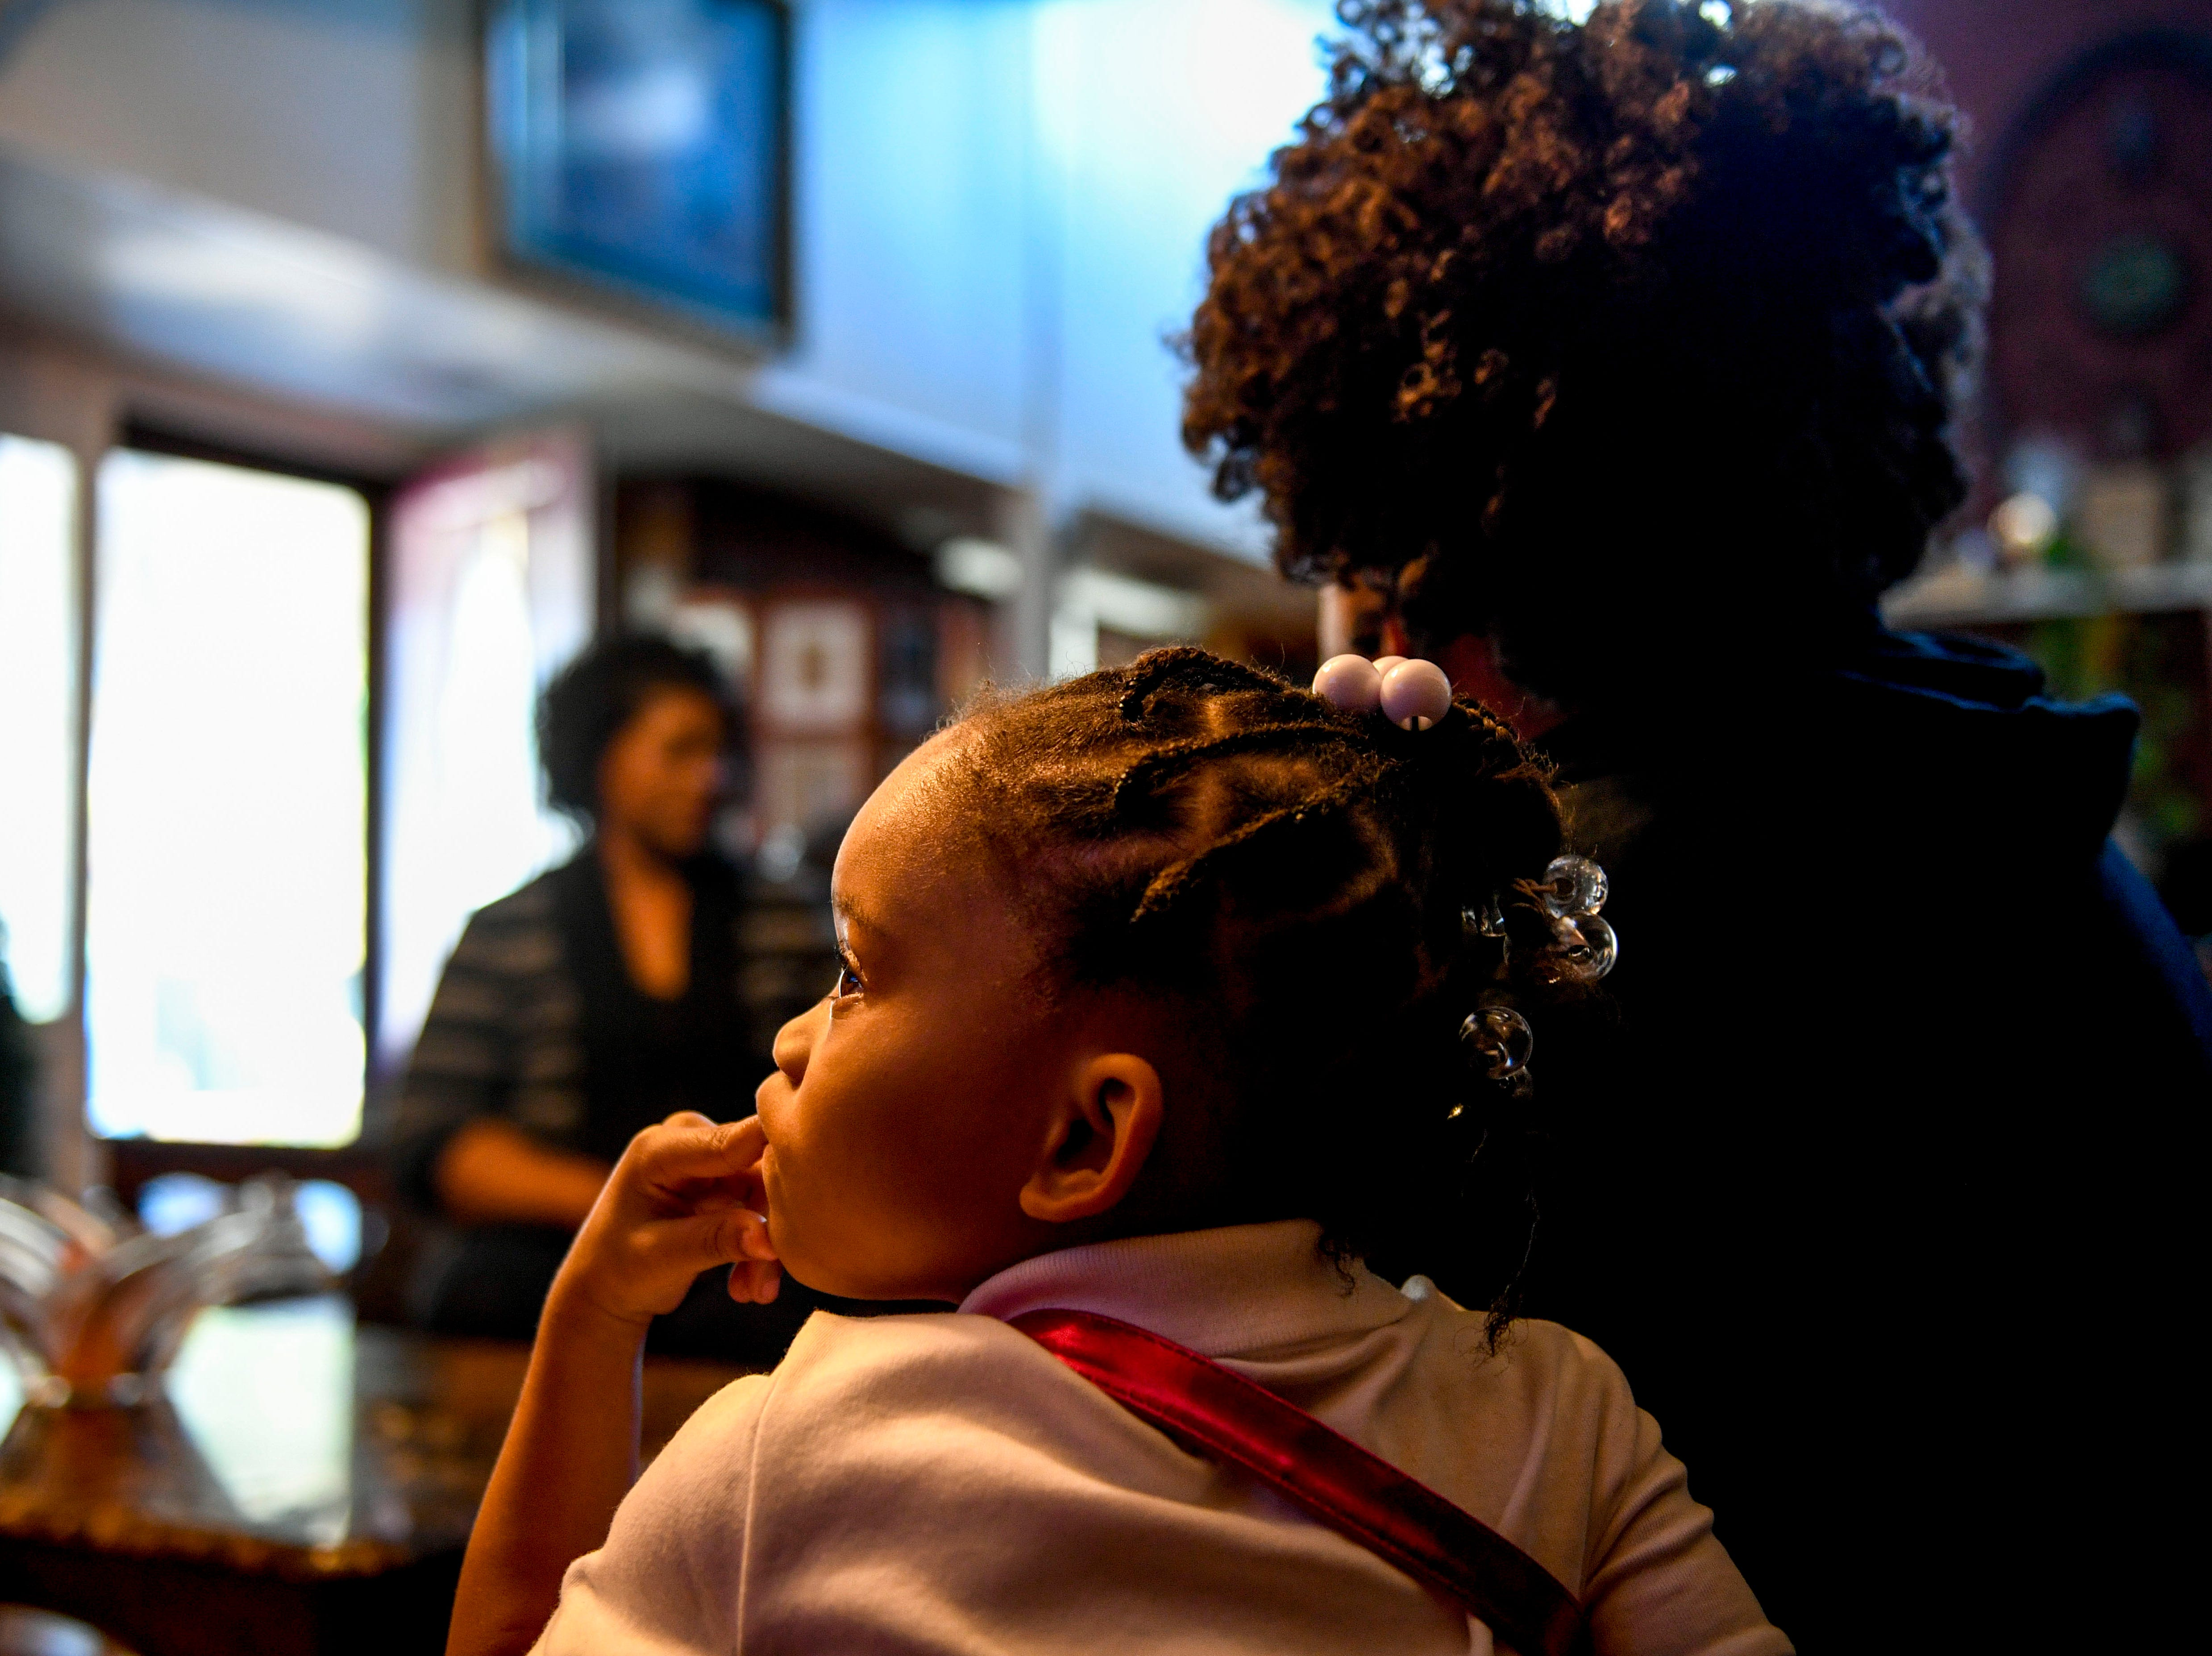 Jaliyah Allen, 4, Tory Howard's youngest daughter, watches television on the couch with Margaret Theus, one of Tory Howard's sisters, at the home of Martha Epperson in Jackson, Tenn., on Wednesday, Nov. 7, 2018.